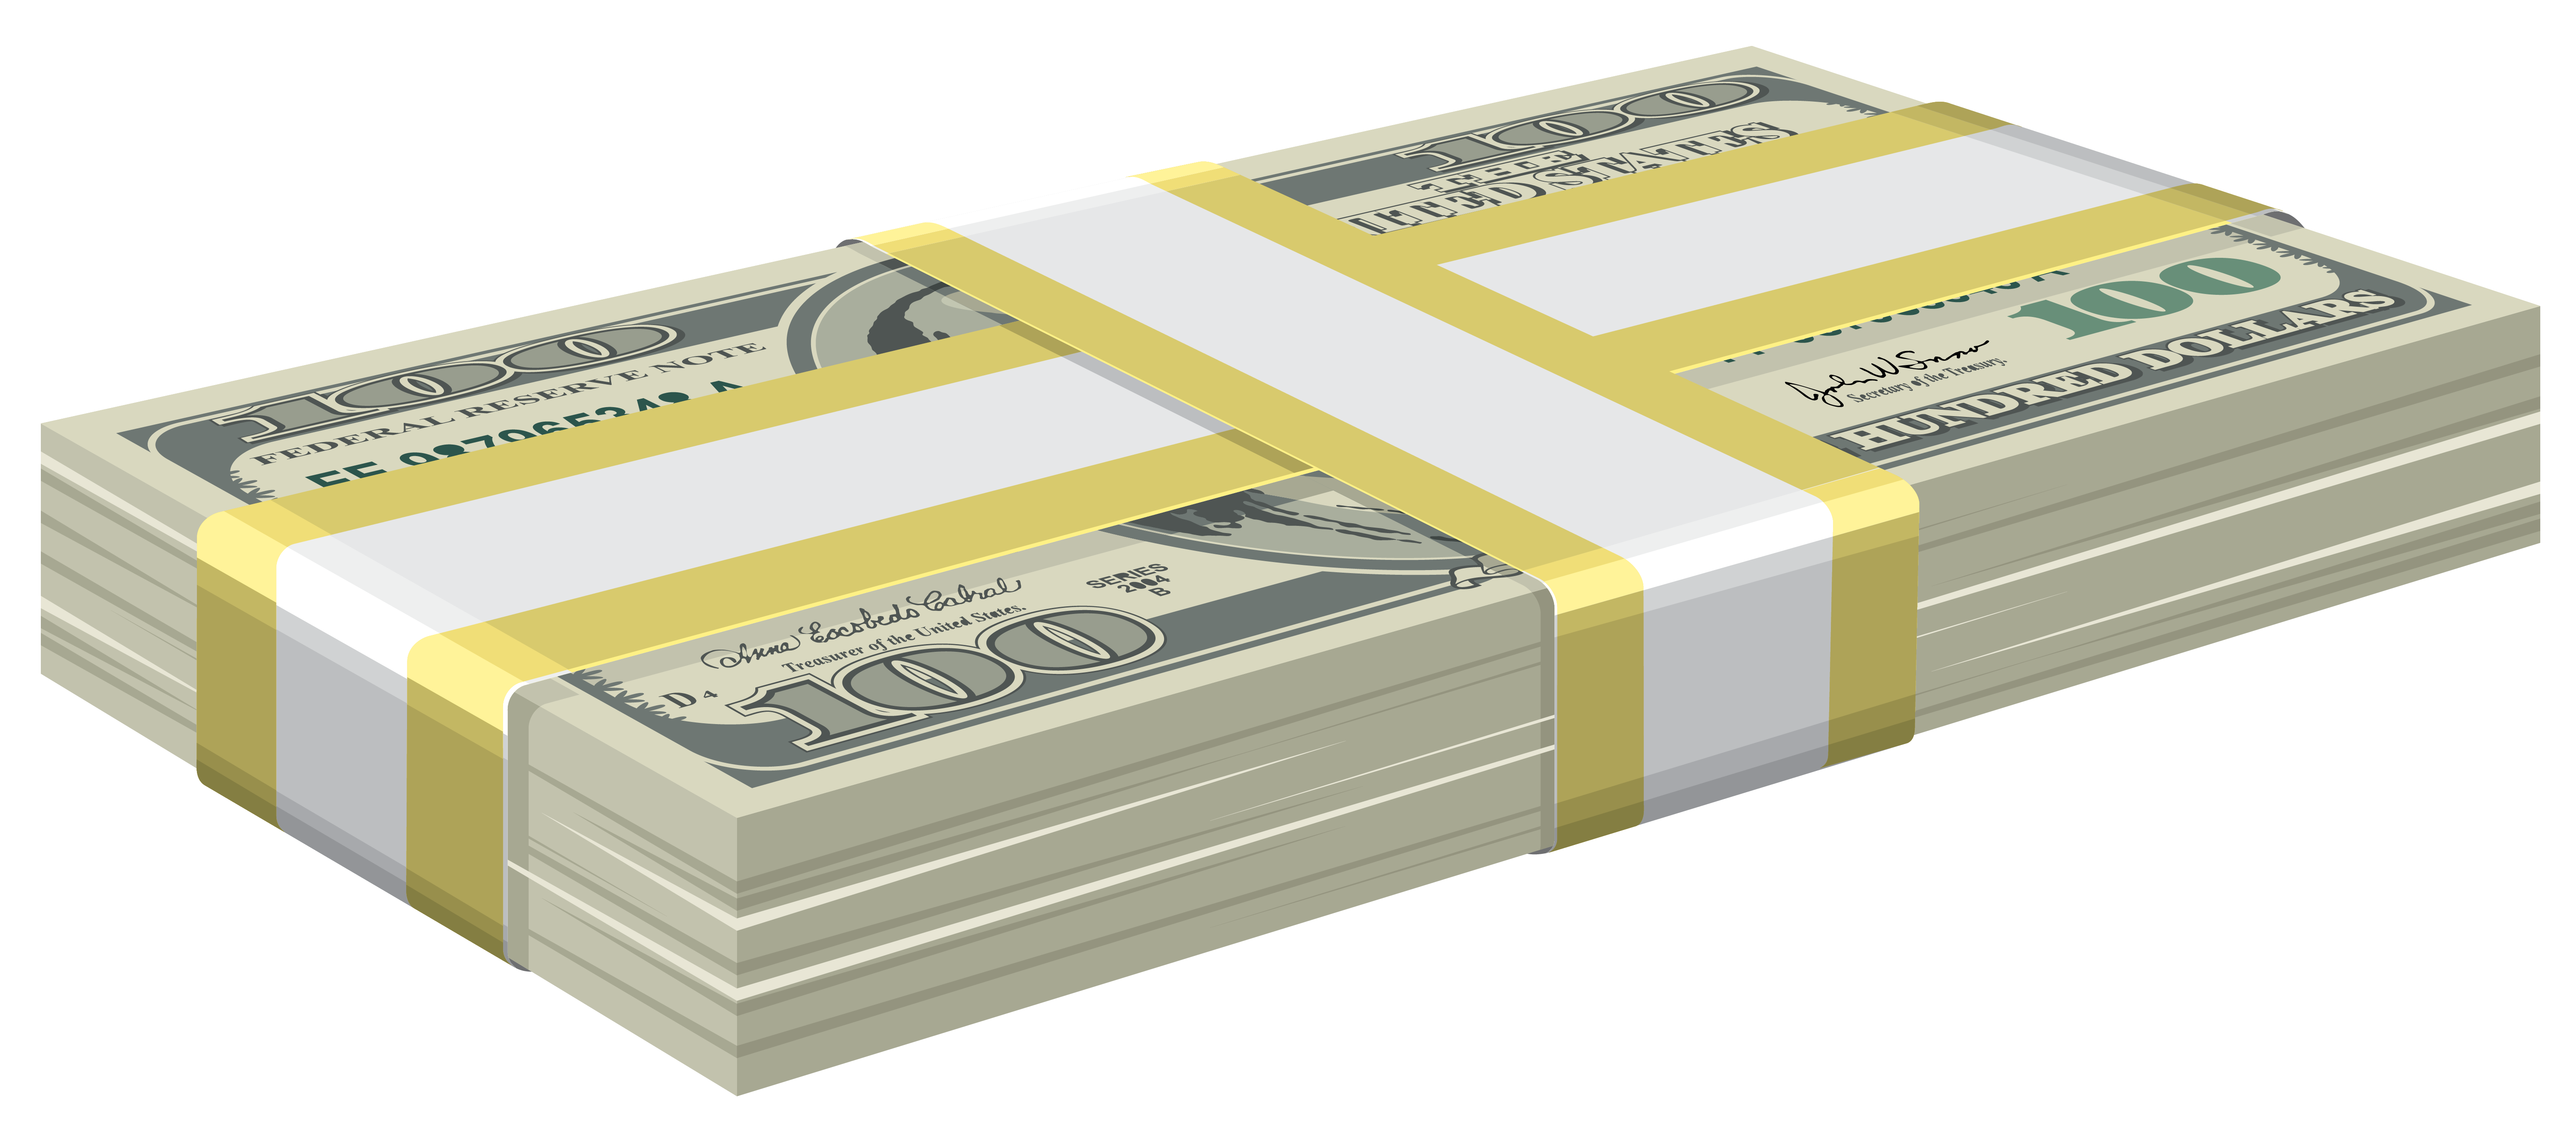 Tax clipart money supply, Tax money supply Transparent FREE.